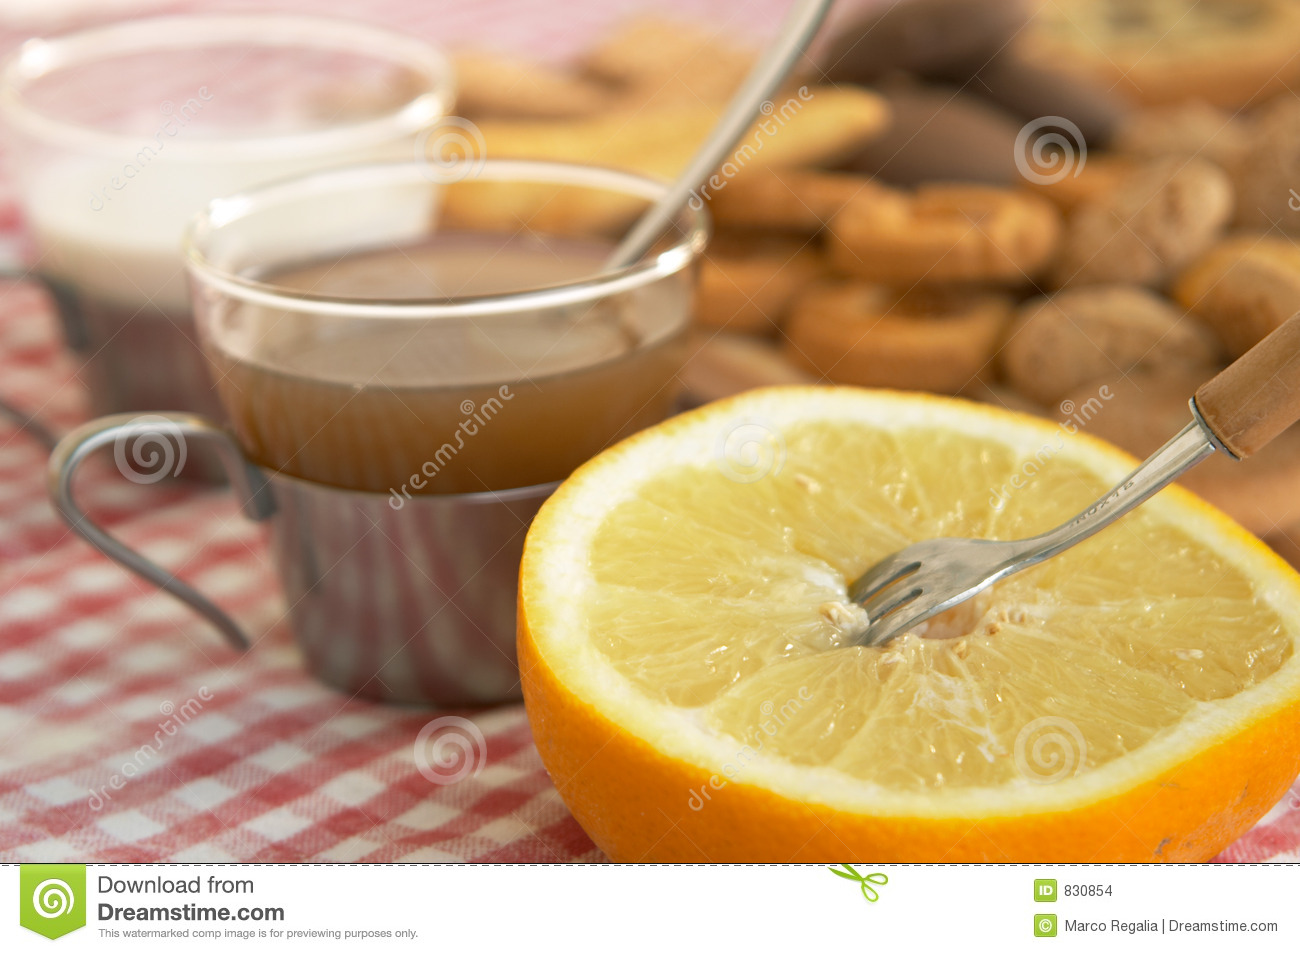 Cereal biscuits, grapefruit and a cup of tea or milk